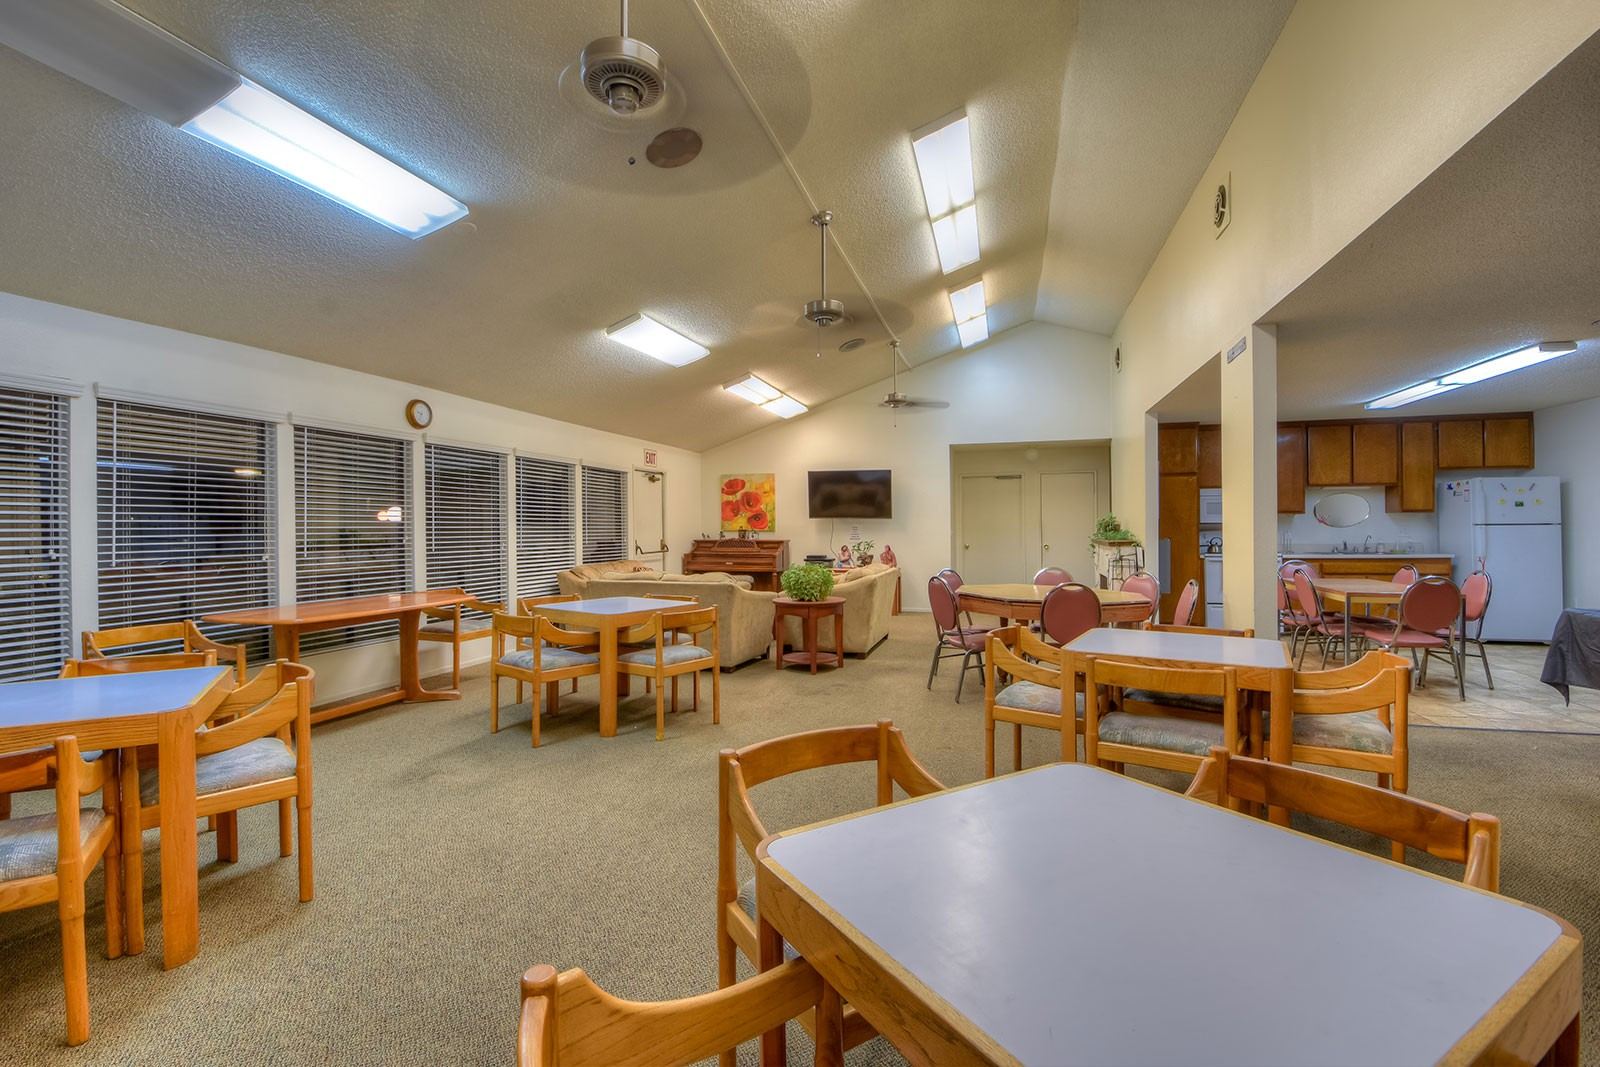 Apartments Near Claremont Heritage Plaza: 55+ Community for Claremont McKenna College Students in Claremont, CA